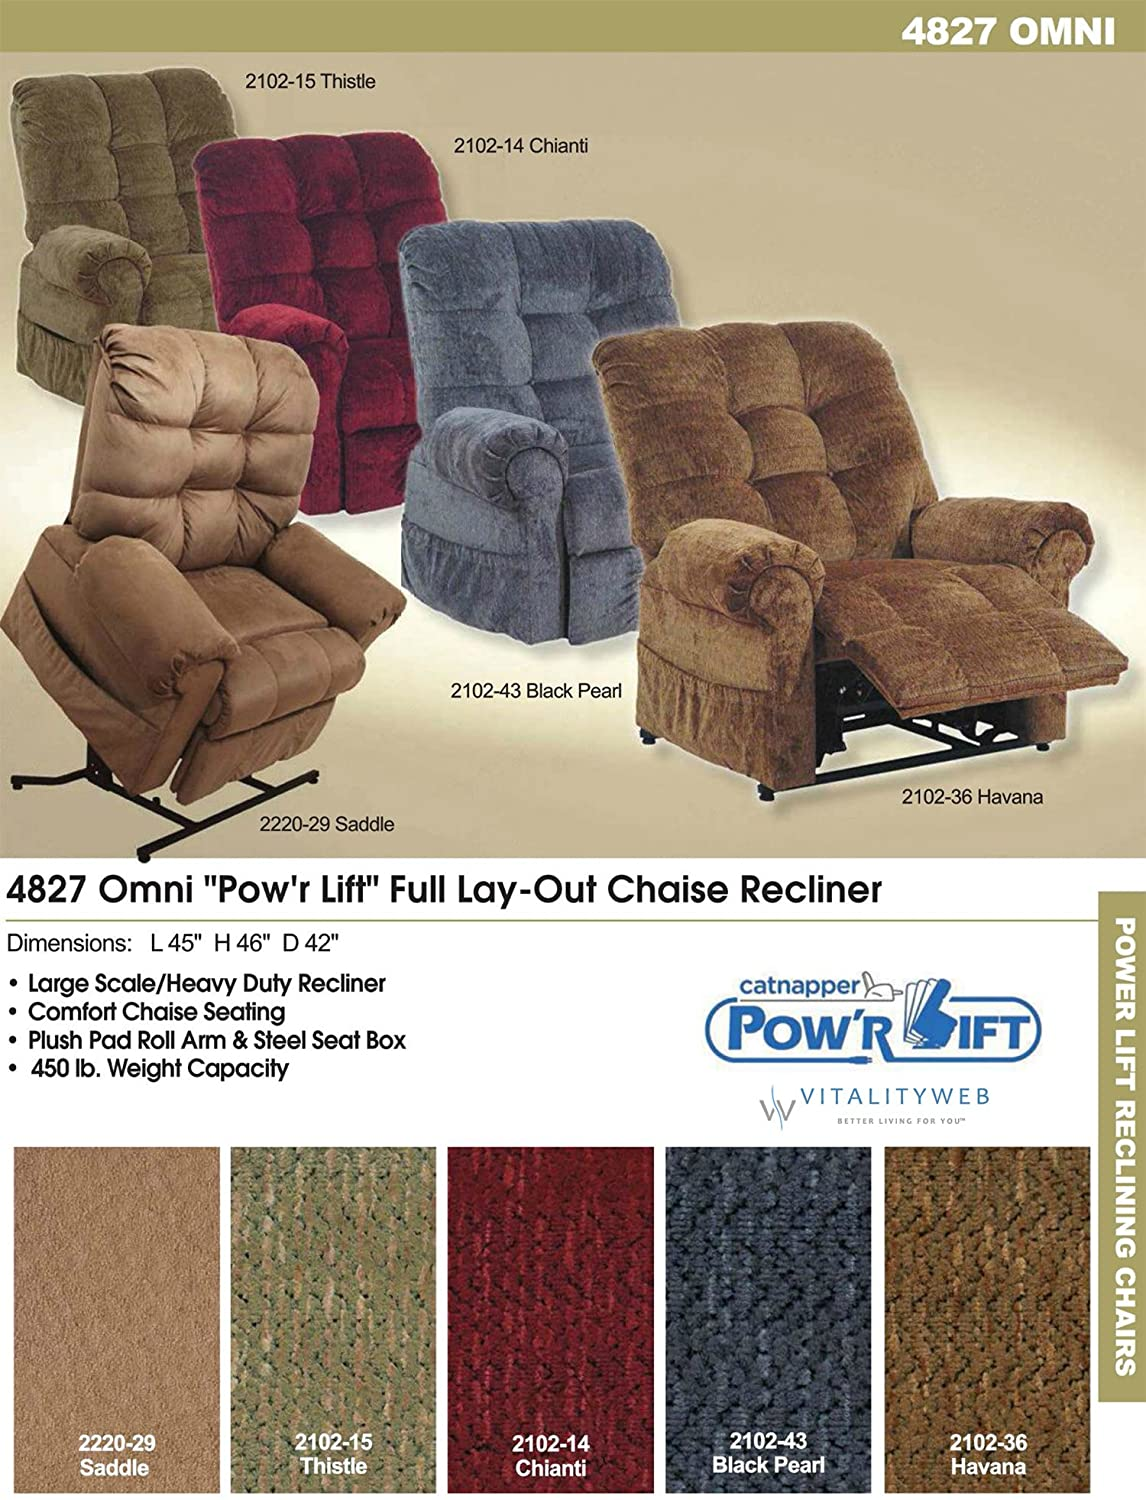 Phenomenal Catnapper Omni 4827 Power Full Lay Out Large Heavy Duty Lift Chair Recliner 450 Lb Capacity Ink Fabric With In Home Delivery And Setup Pabps2019 Chair Design Images Pabps2019Com